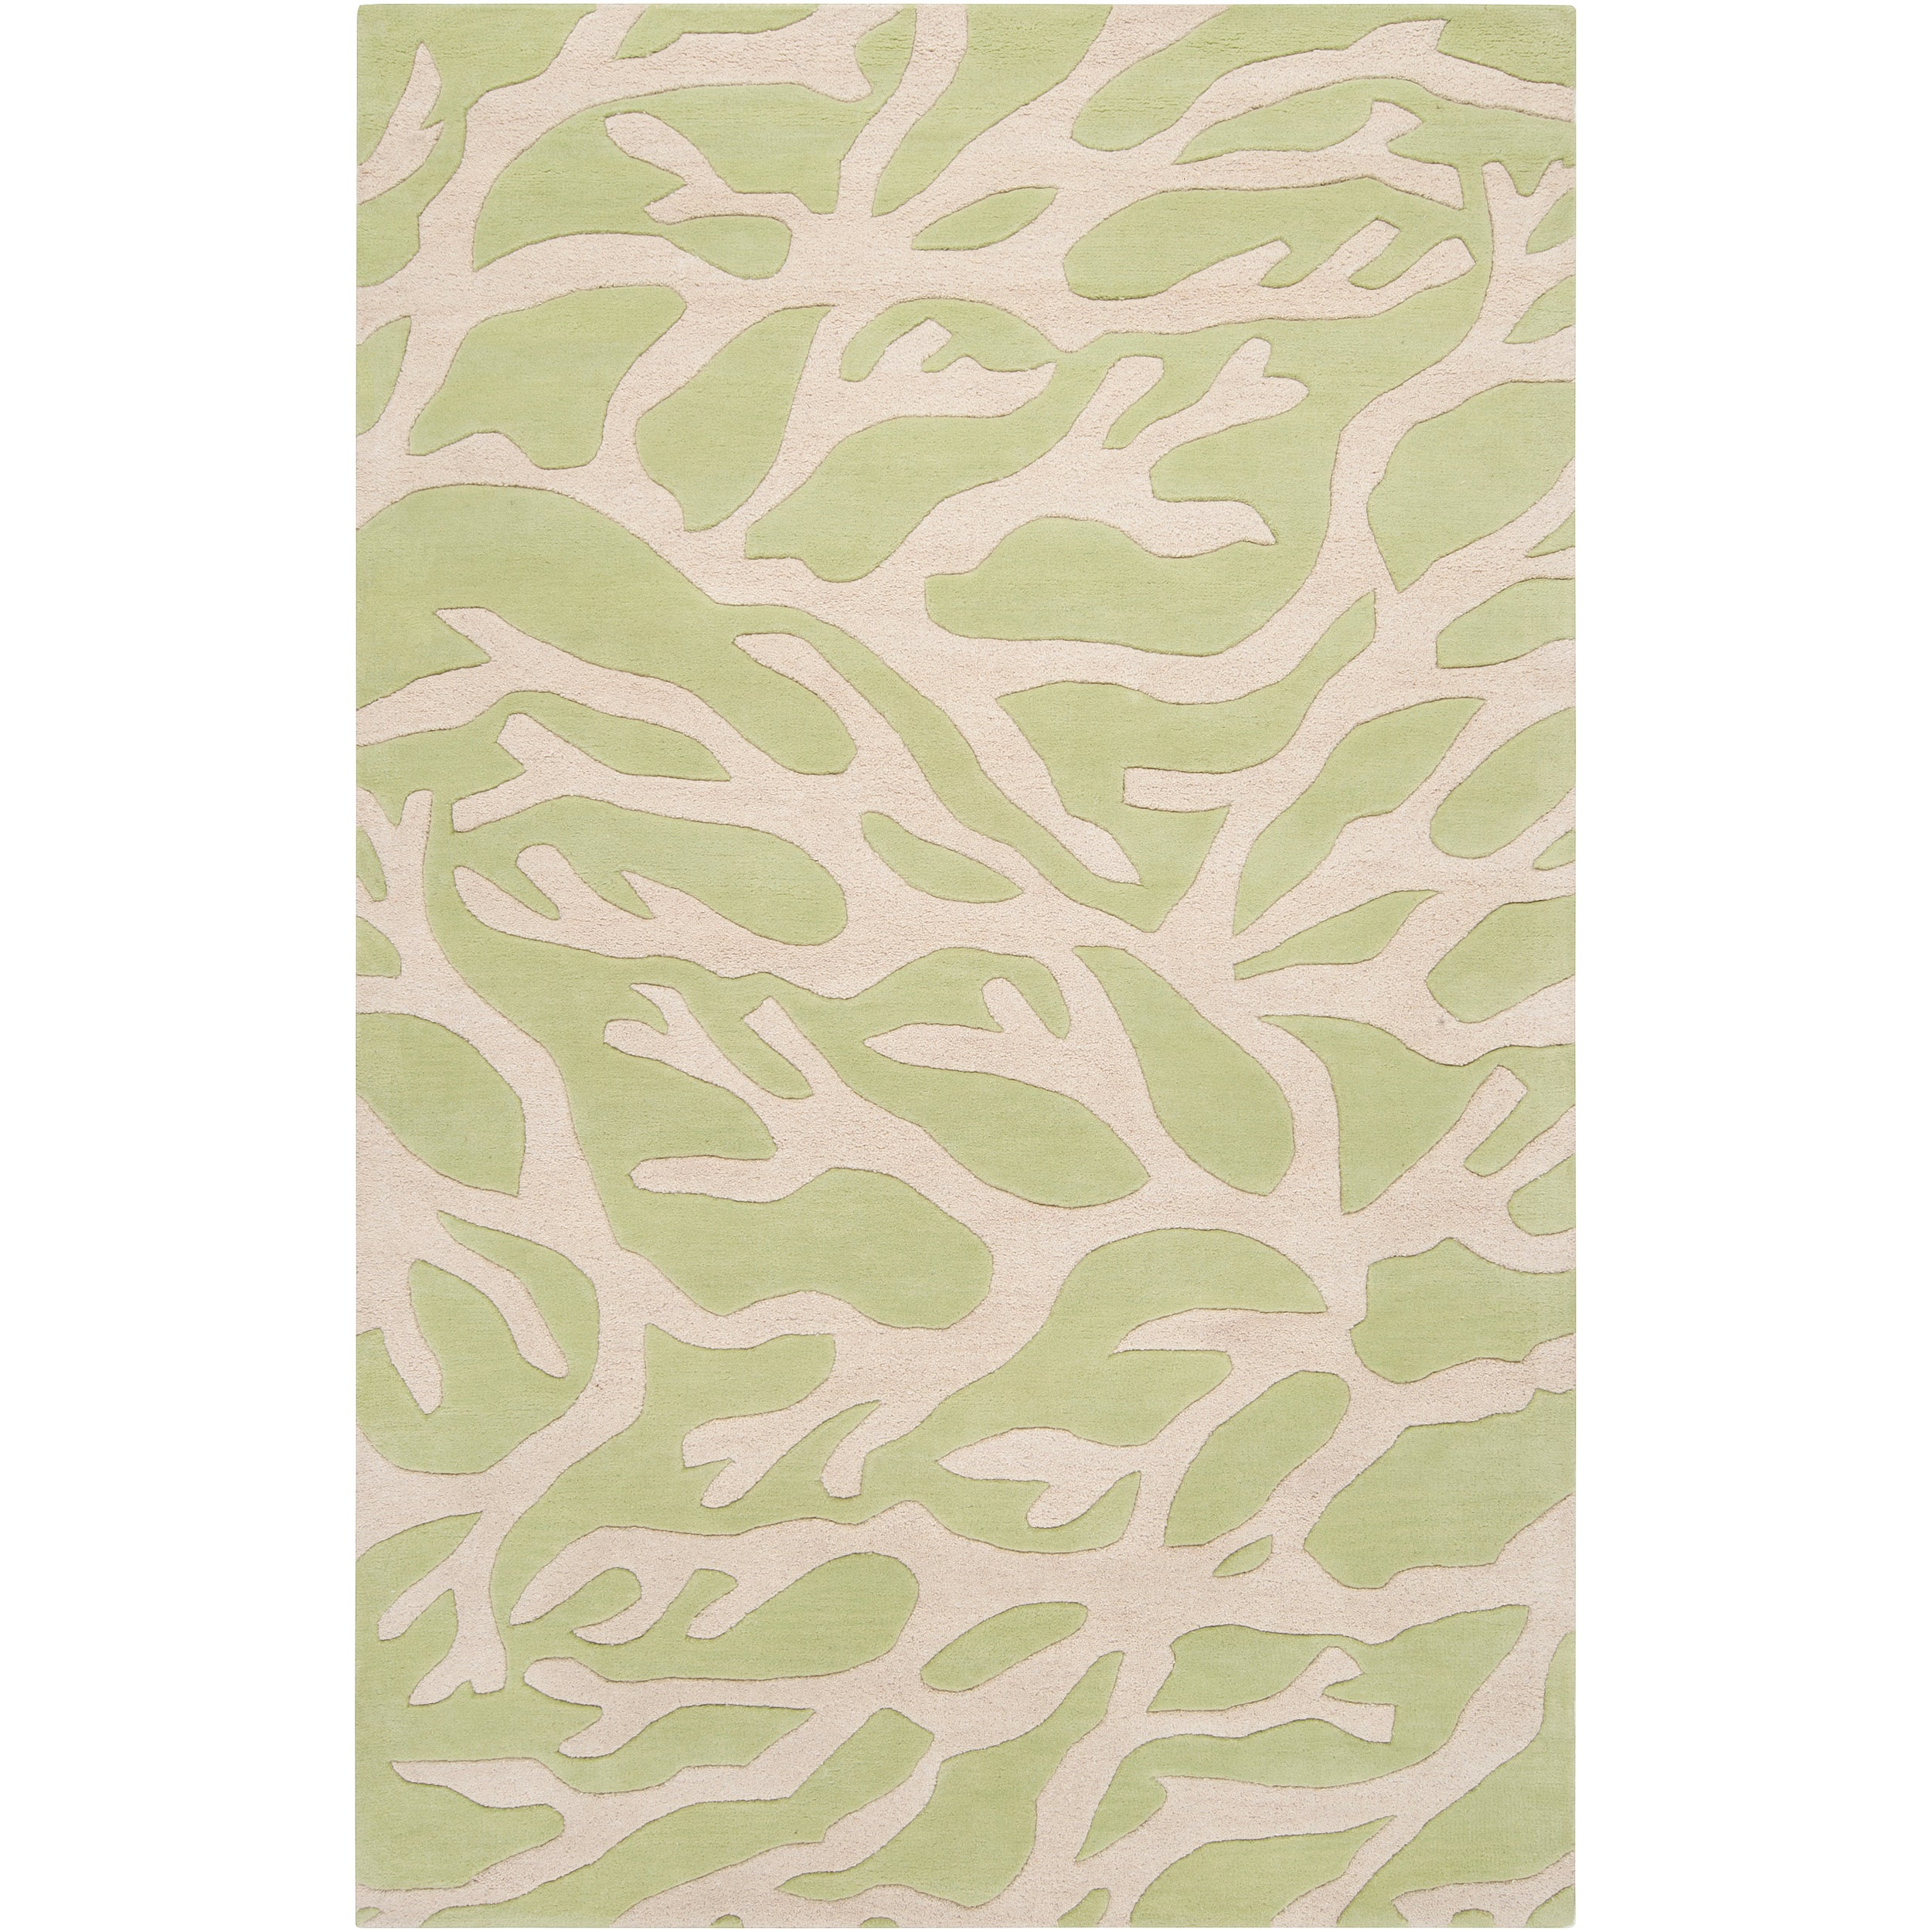 """Somerset Bay Hand-Tufted Casual Bacelot Bay Green Beach Inspired Wool Rug (3'3"""" x 5'3"""")"""